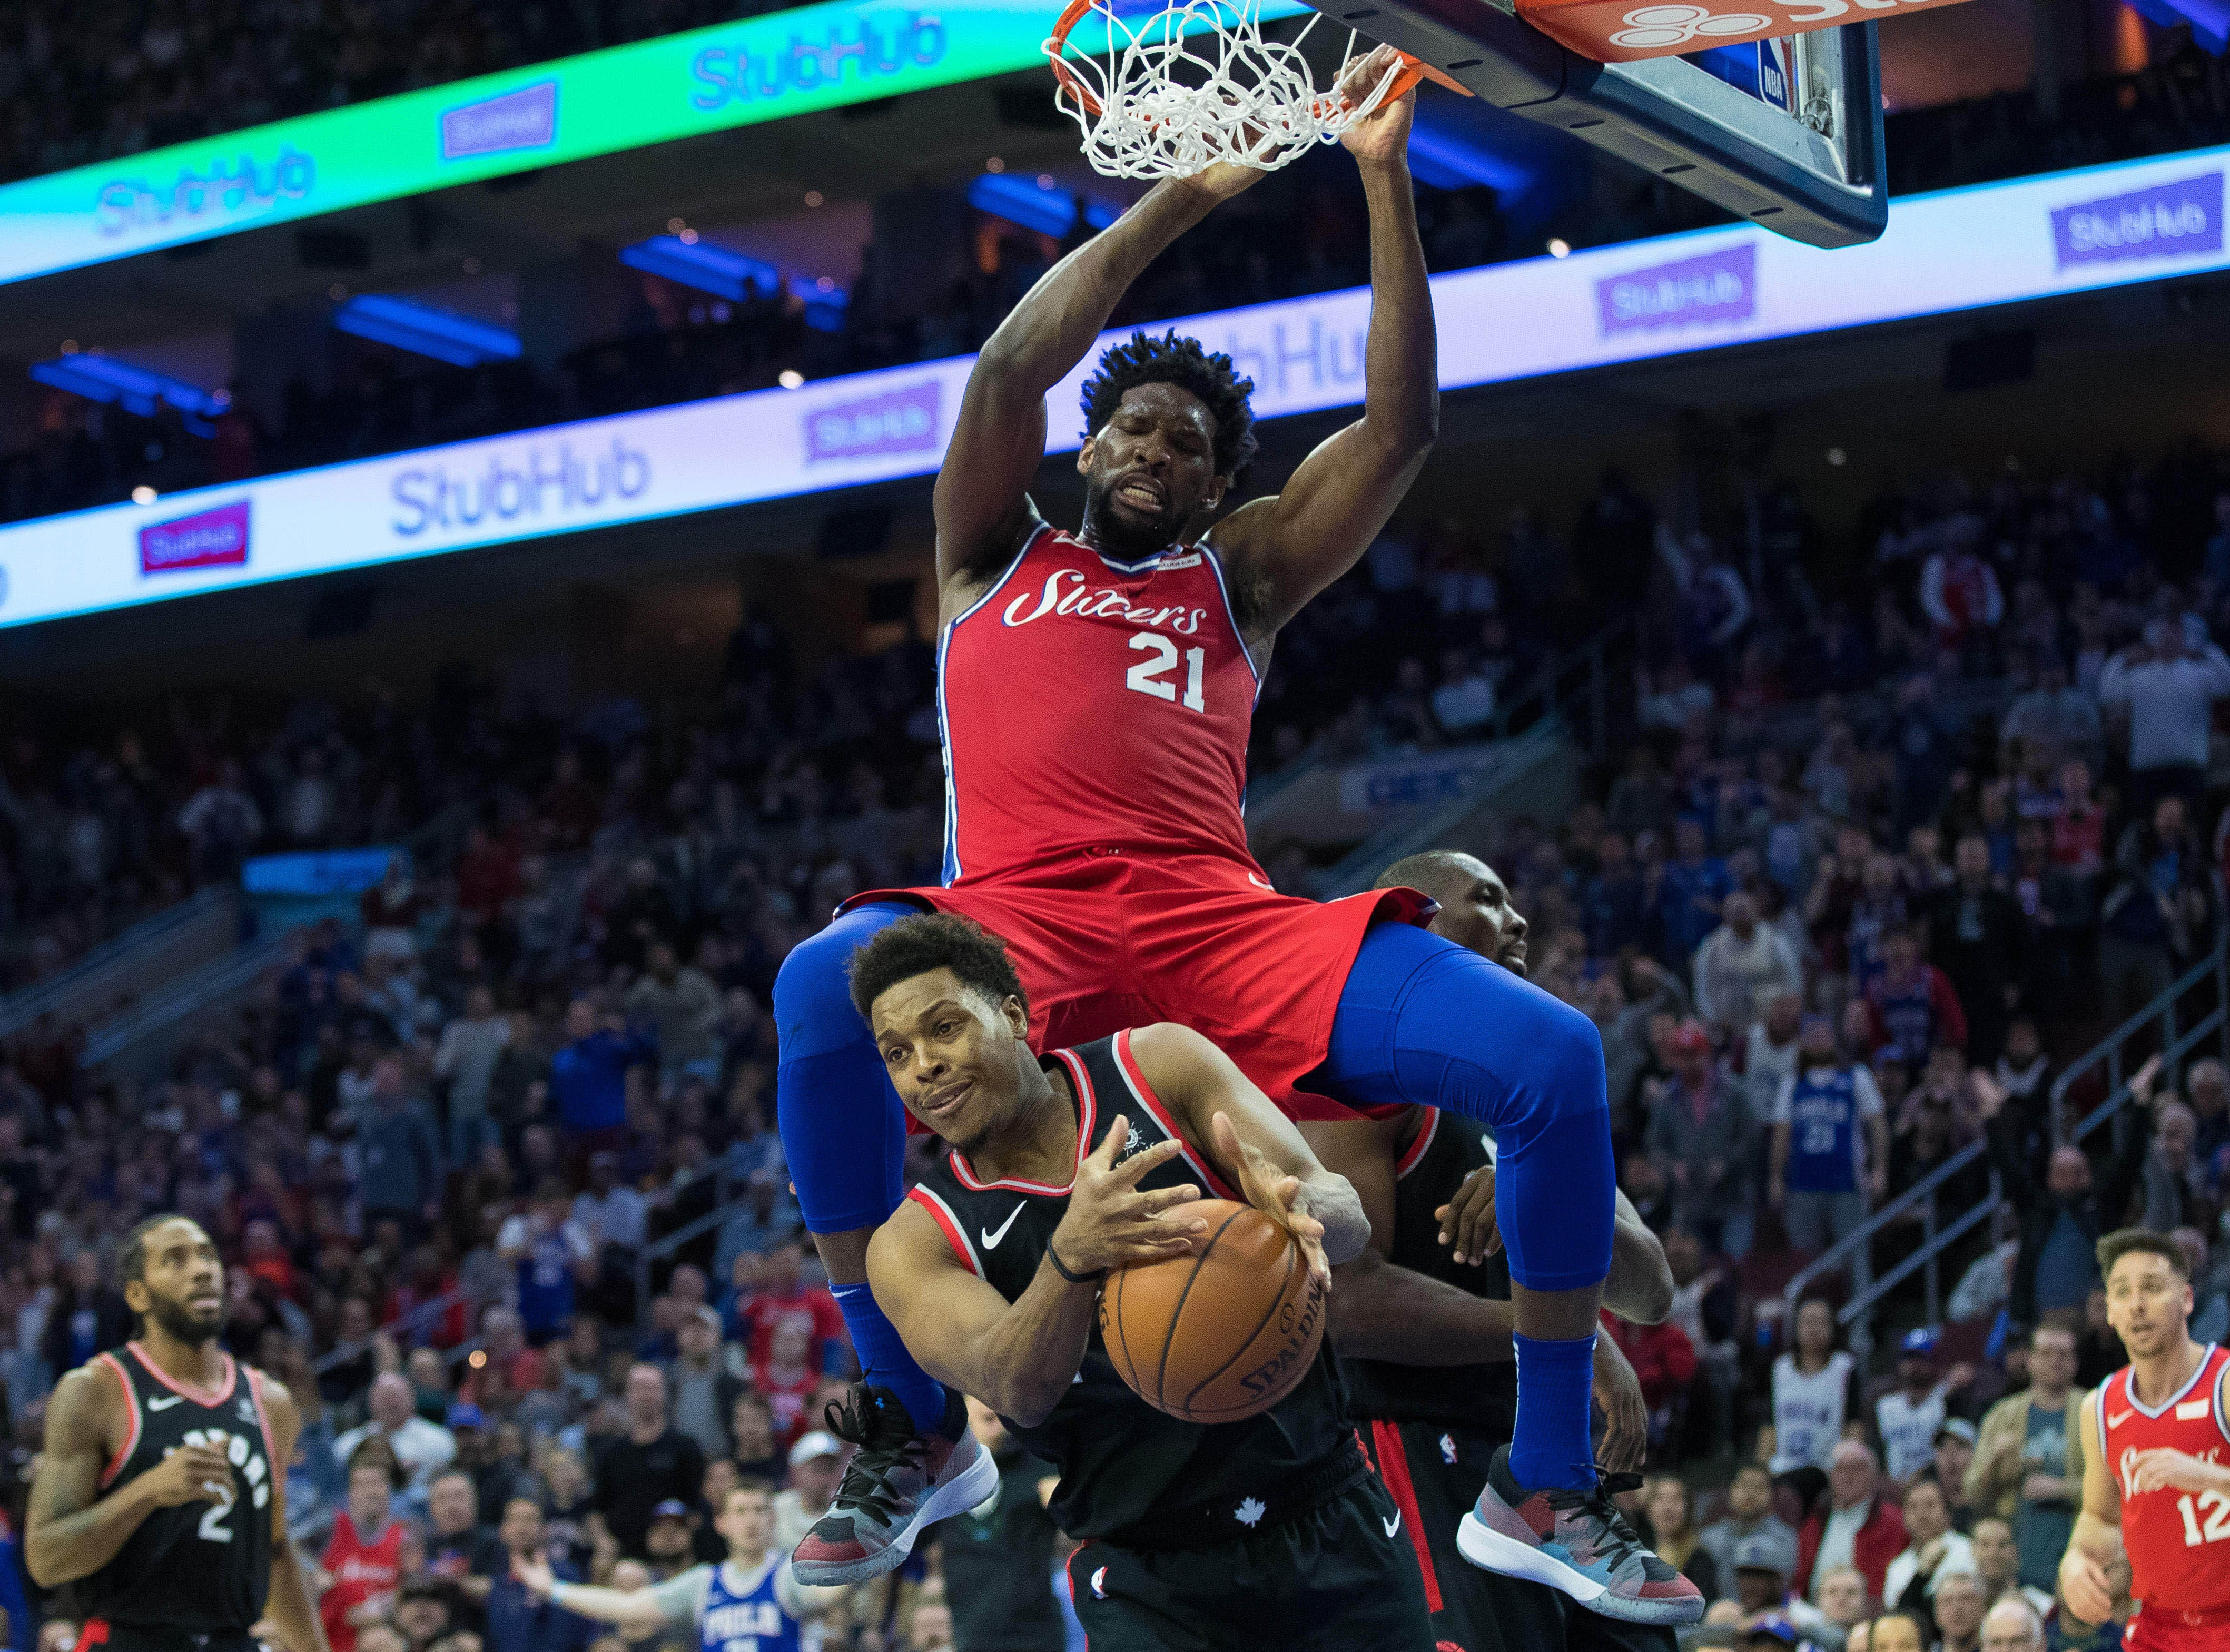 Feb. 5: Philadelphia 76ers center Joel Embiid (21) dunks over Toronto Raptors guard Kyle Lowry (7) during the fourth quarter at Wells Fargo Center.